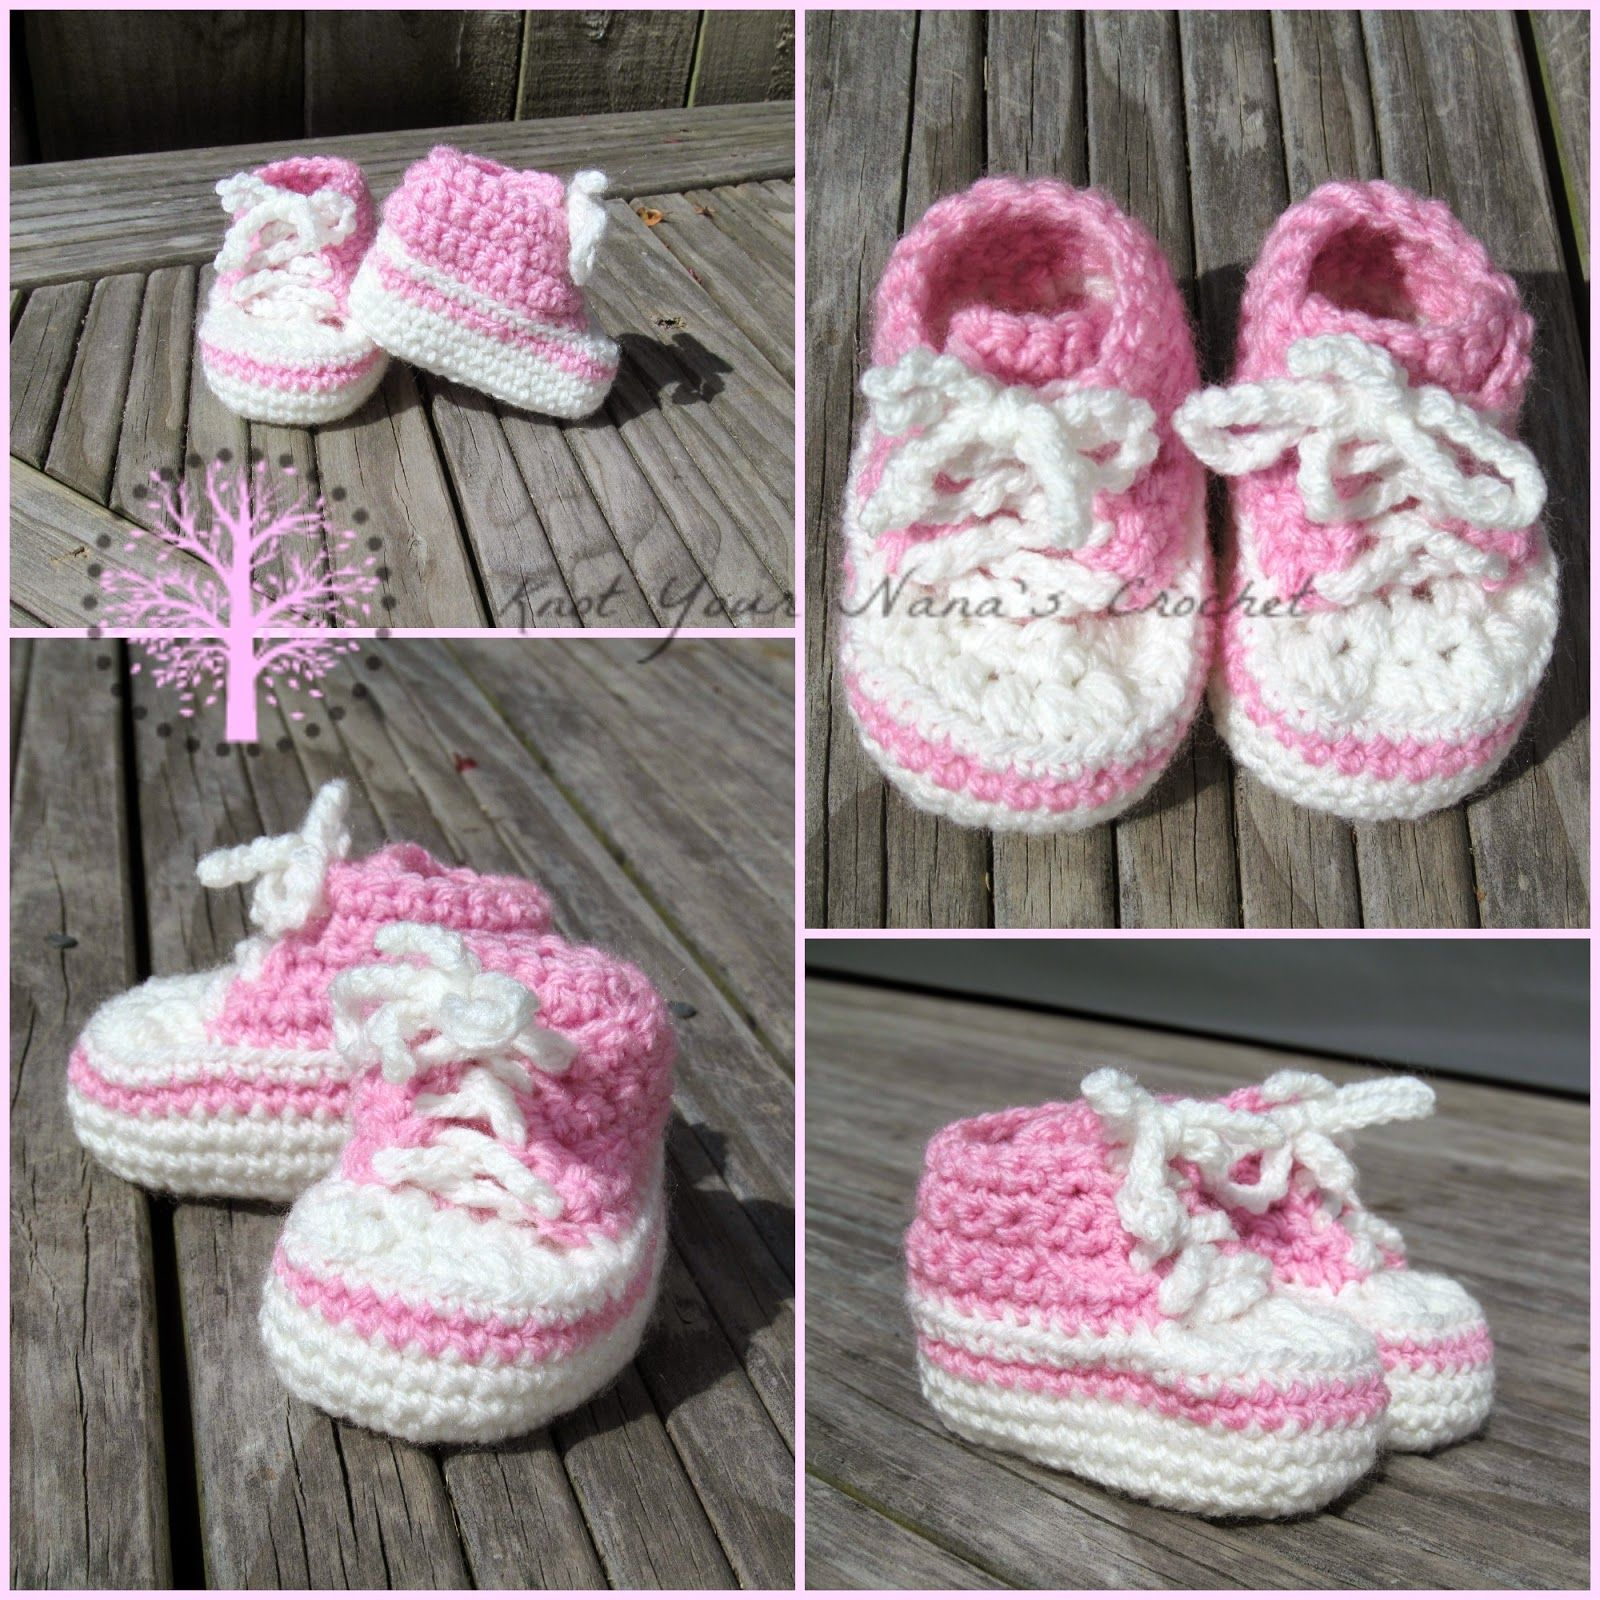 40 Adorable And Free Crochet Baby Booties Patterns 17 Crochet